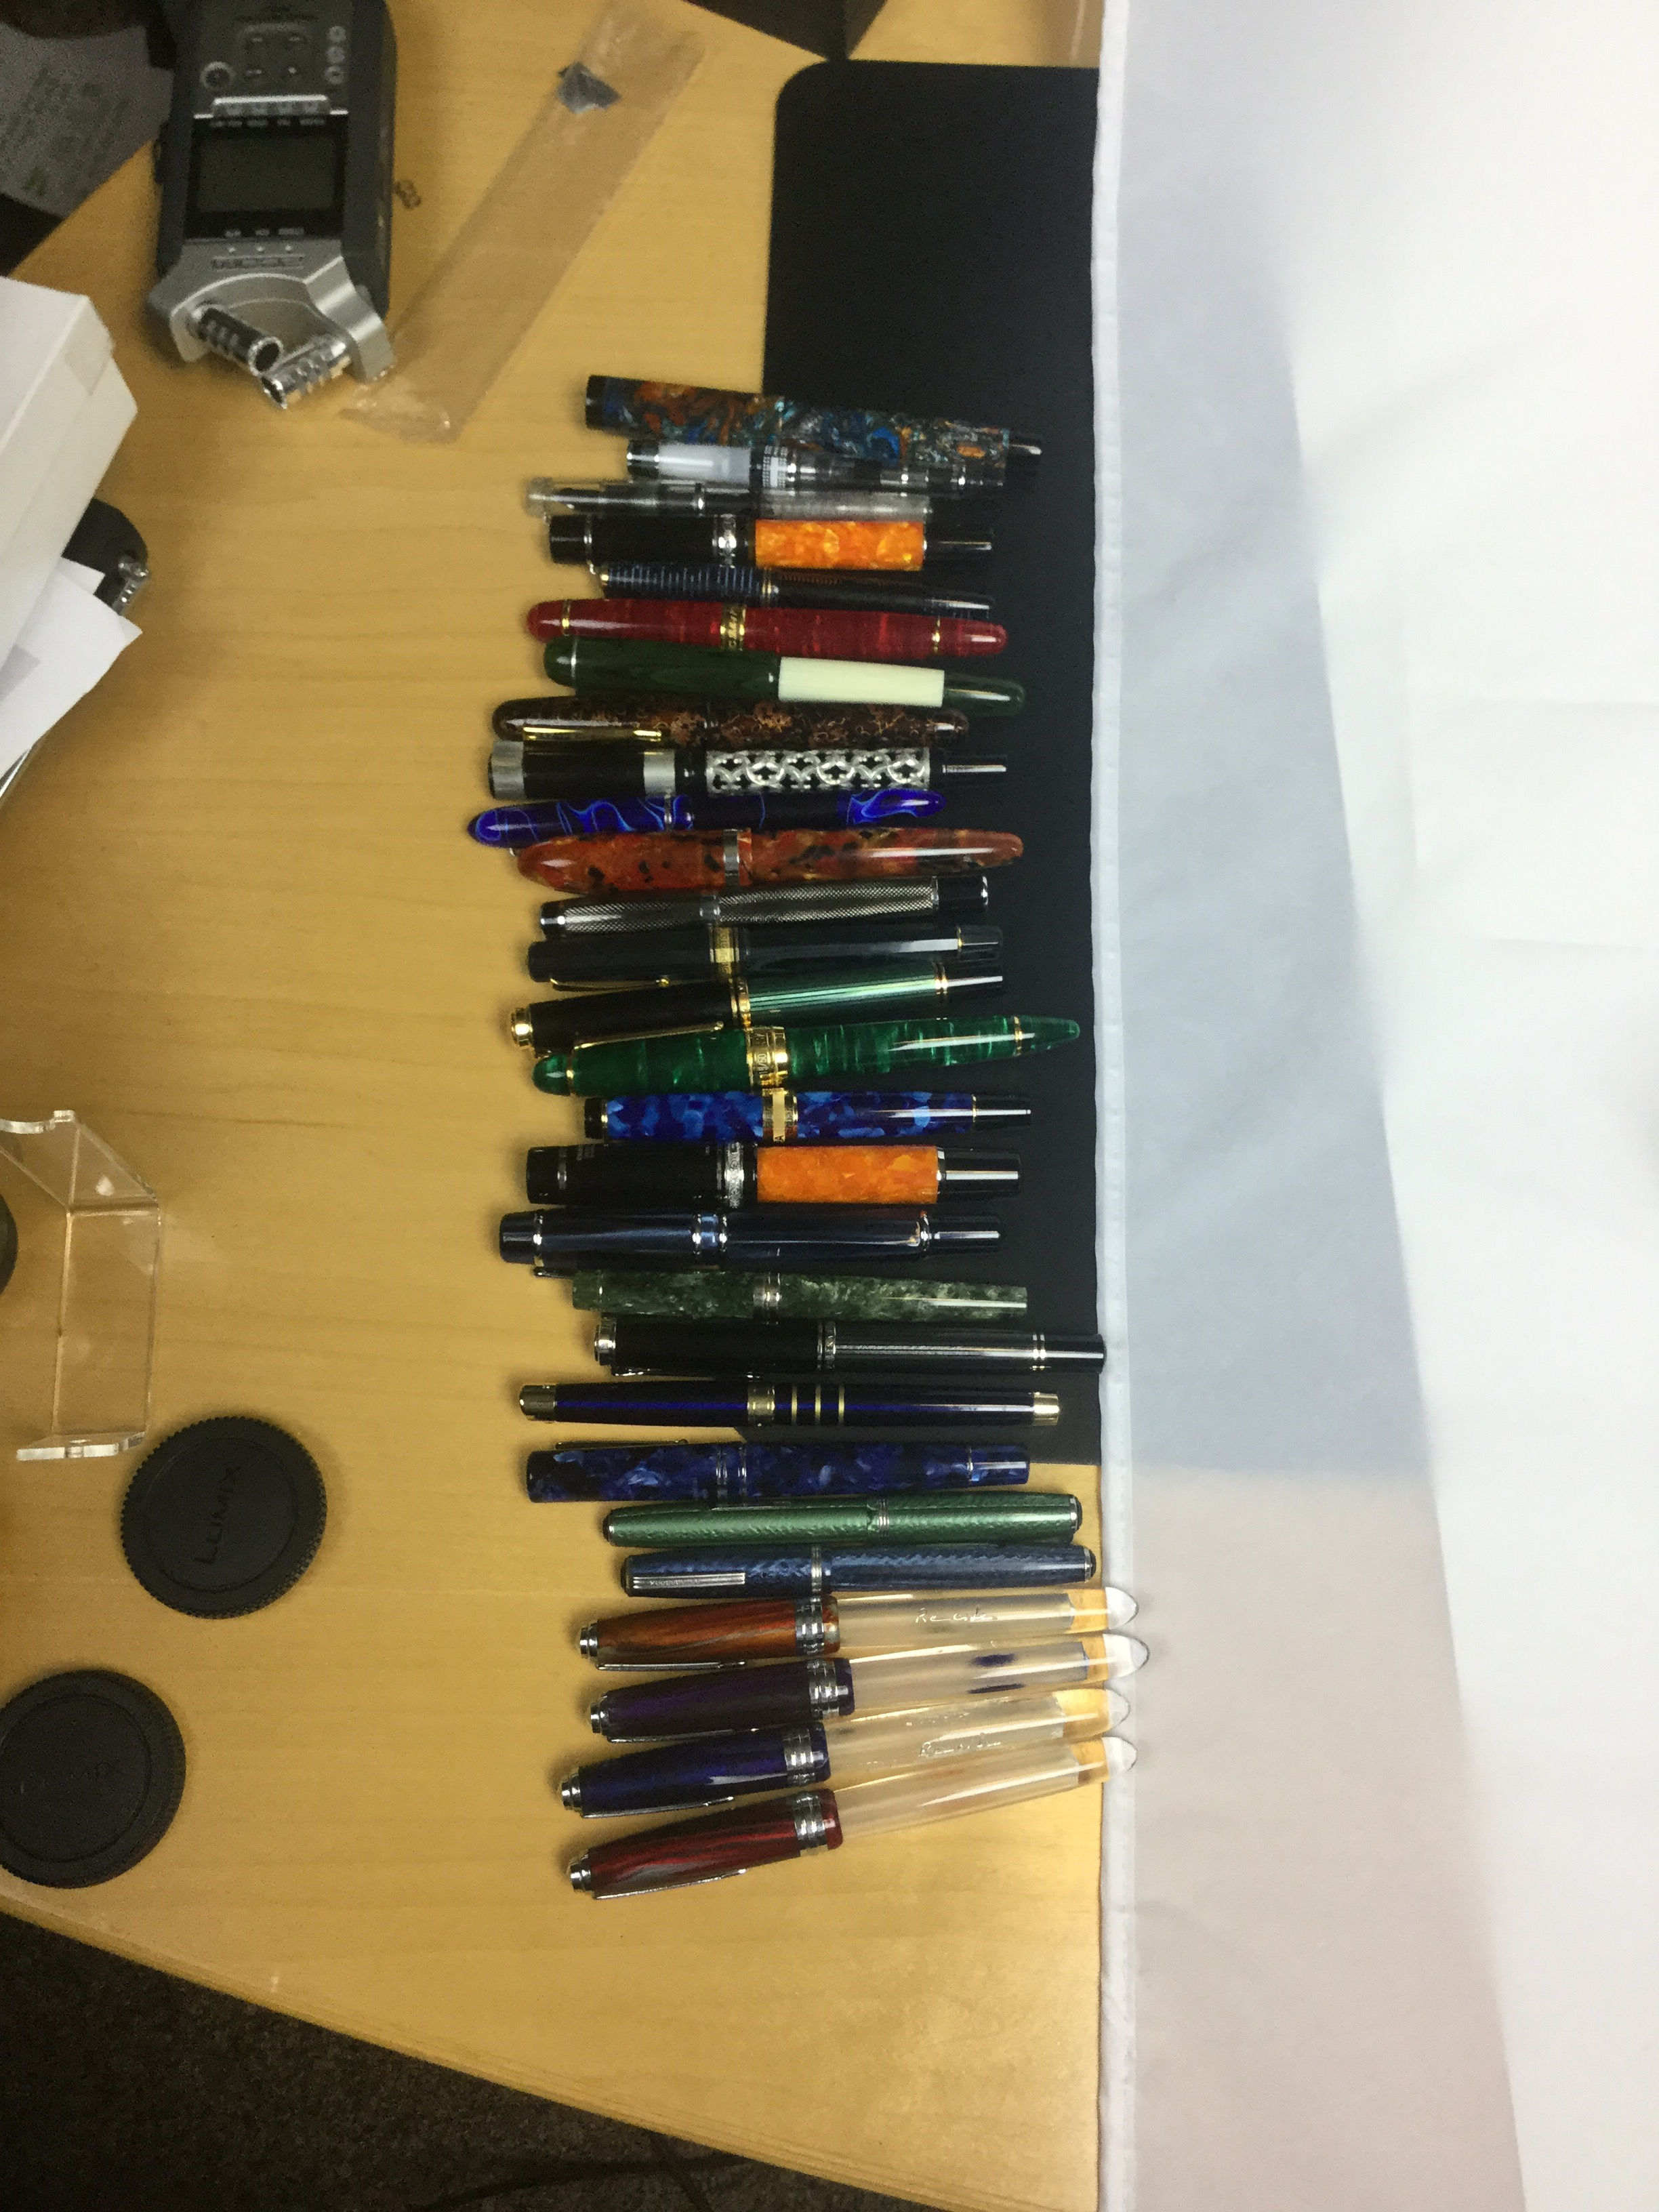 About 2/3rds of the pens that I'll be reviewing in Season 3.